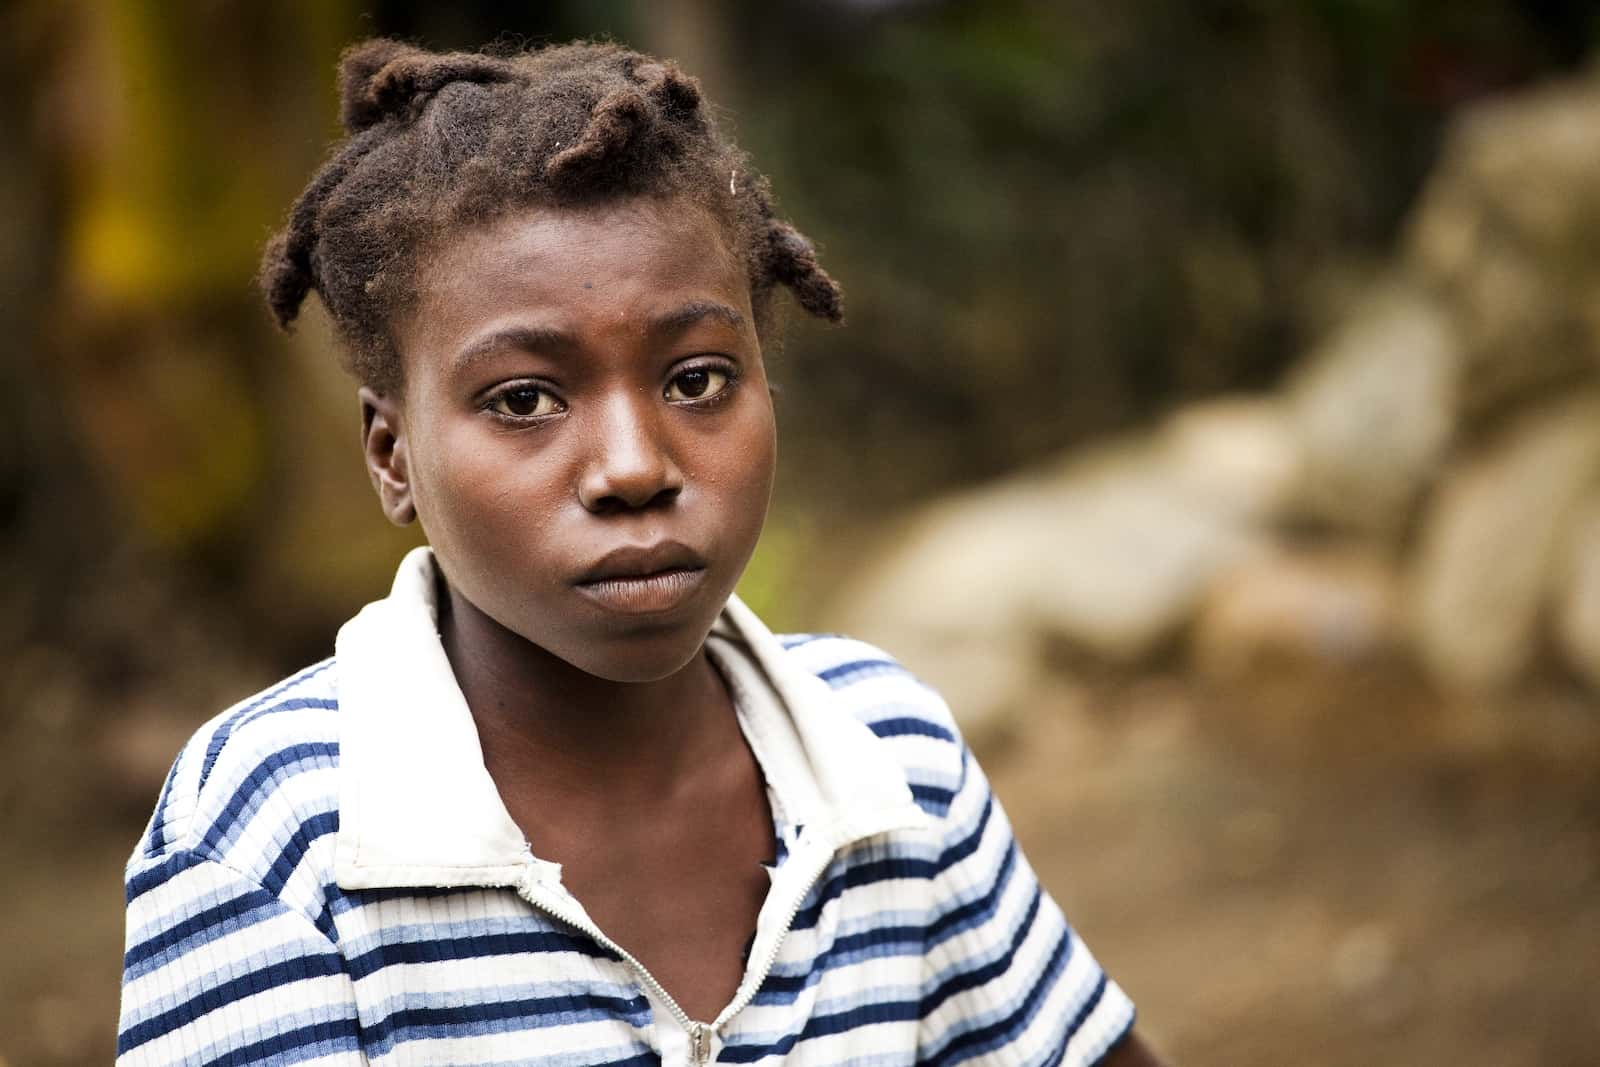 Brokenness Before God: A teenage girl sits, with a solemn look on her face, wearing a white and black striped shirt